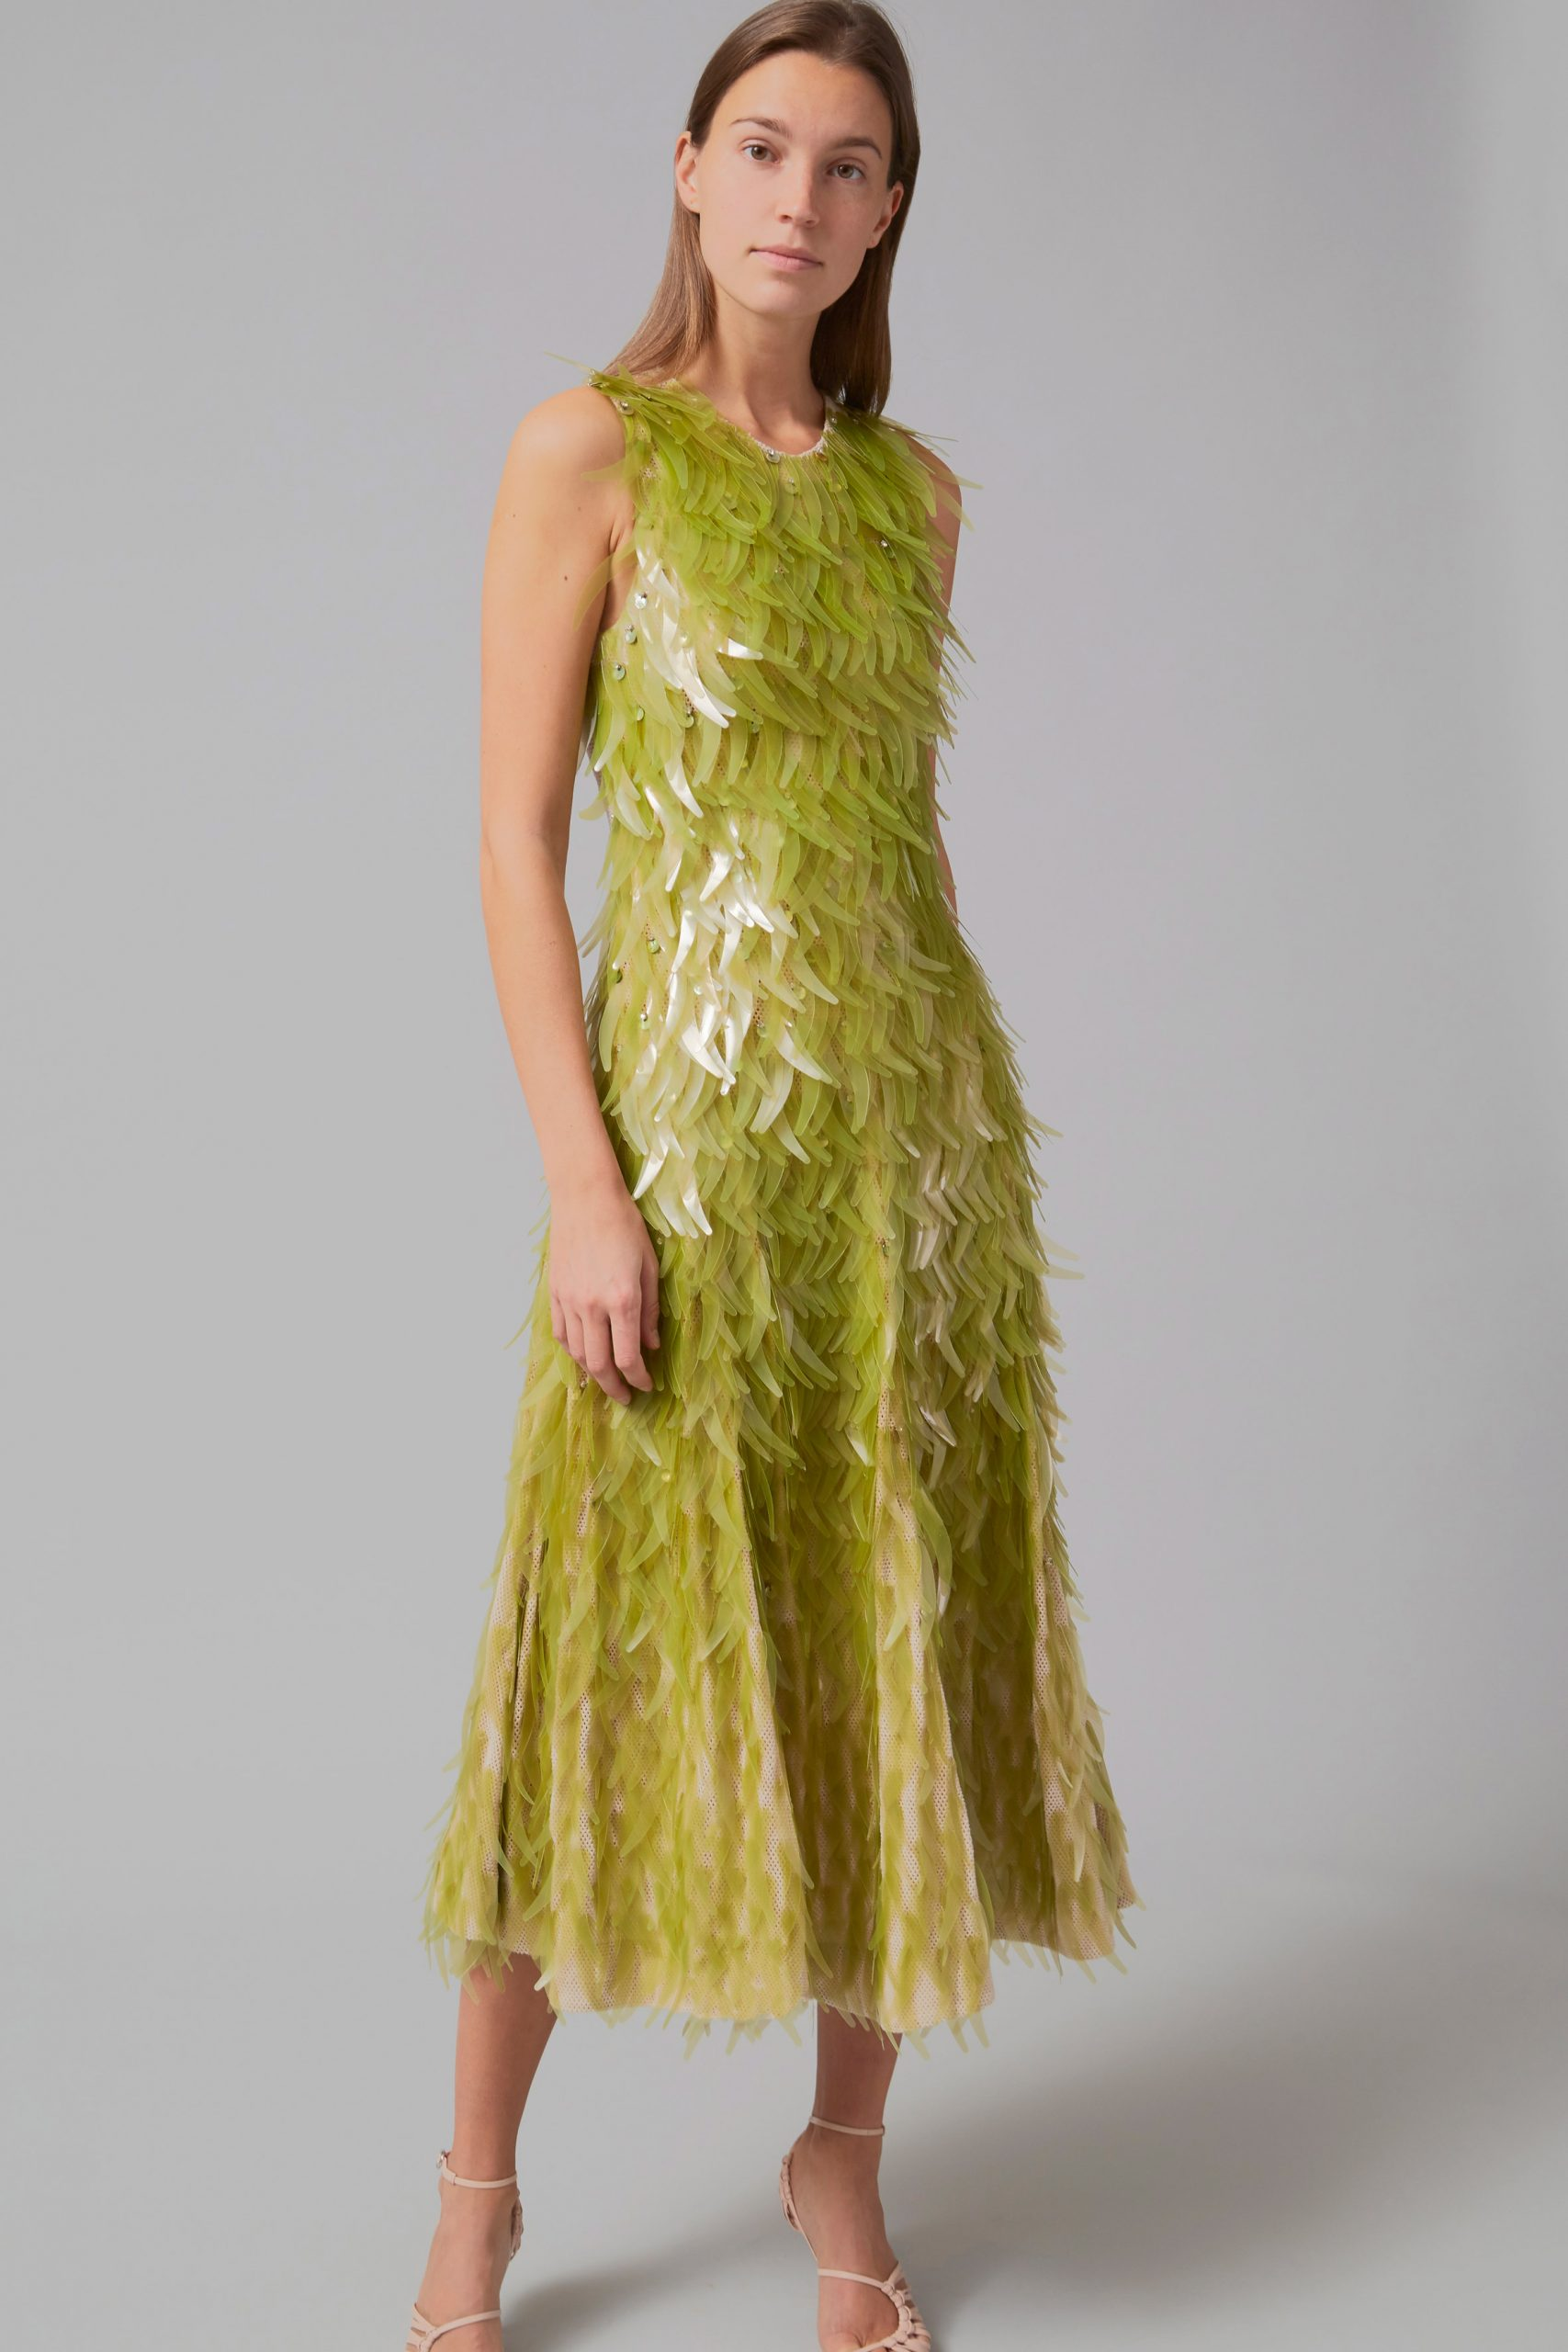 Close up of algae sequin dress by Phillip Lim as part of One X One project